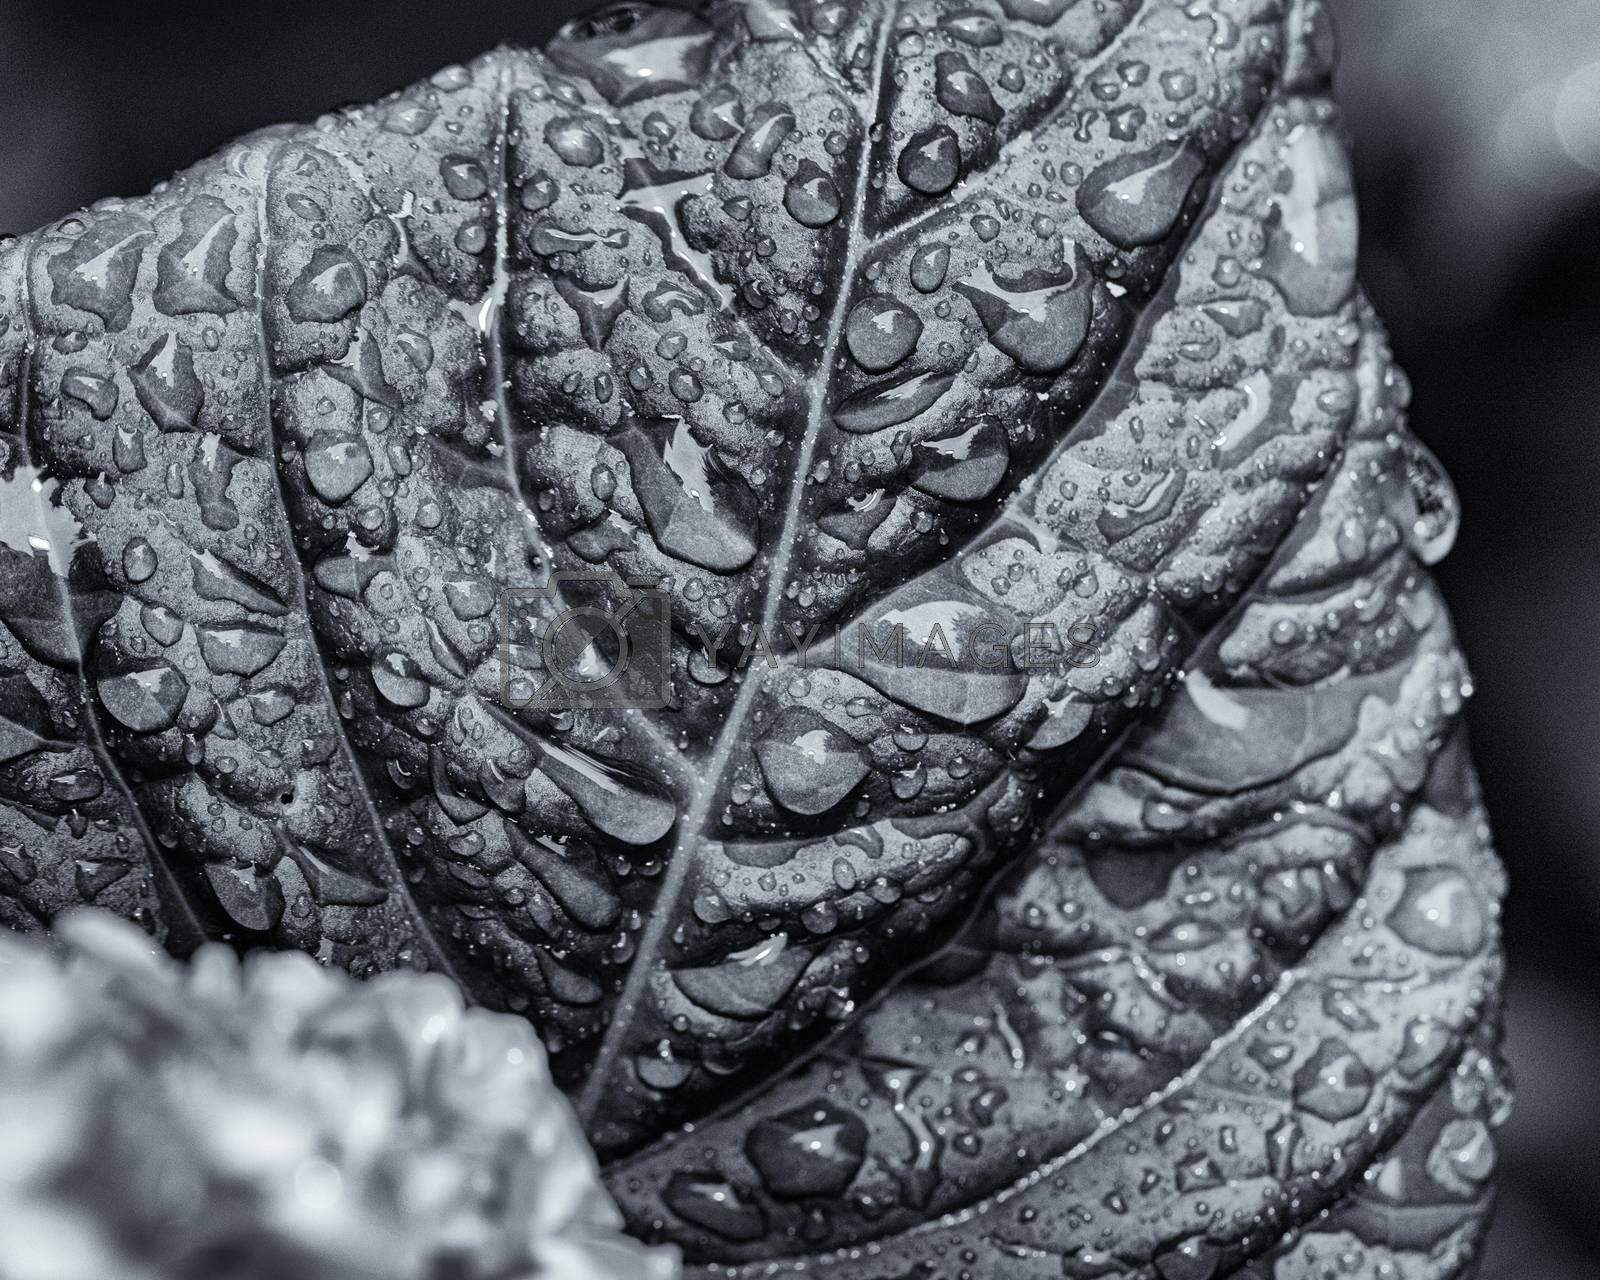 Highly textured monochrome view of hydrangea leaf with beads of rain.